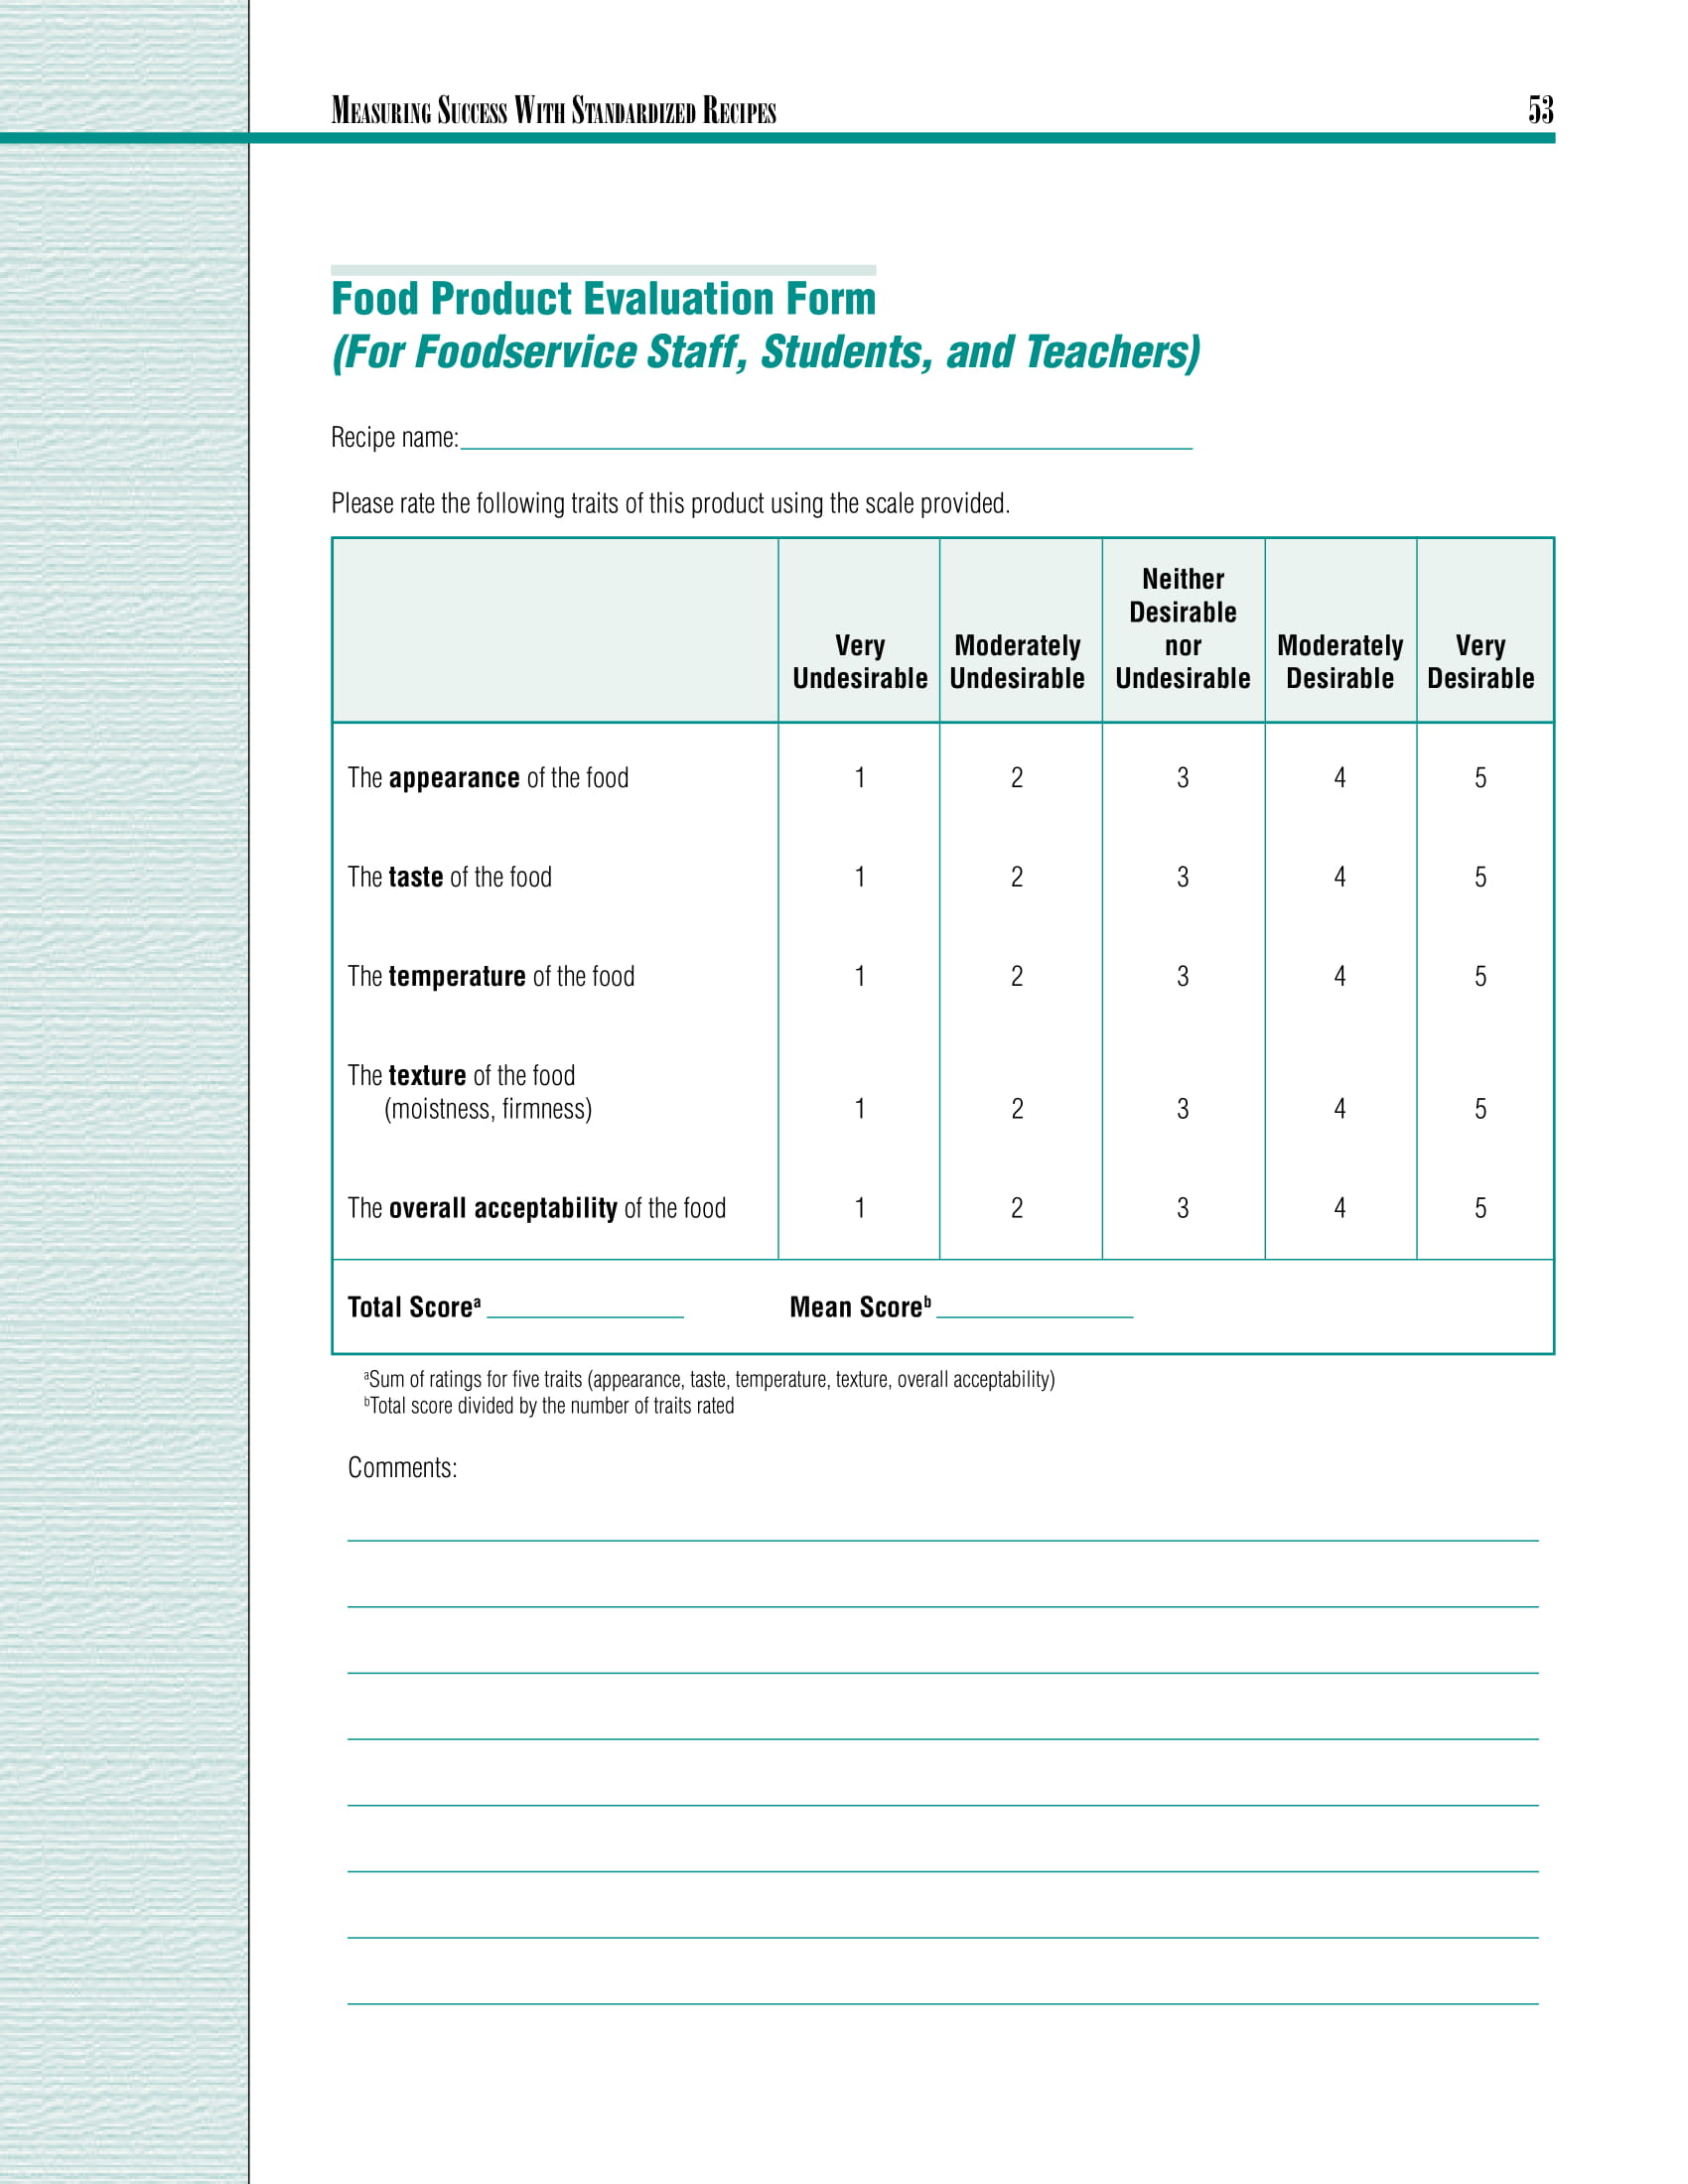 restaurant food product evaluation form 03